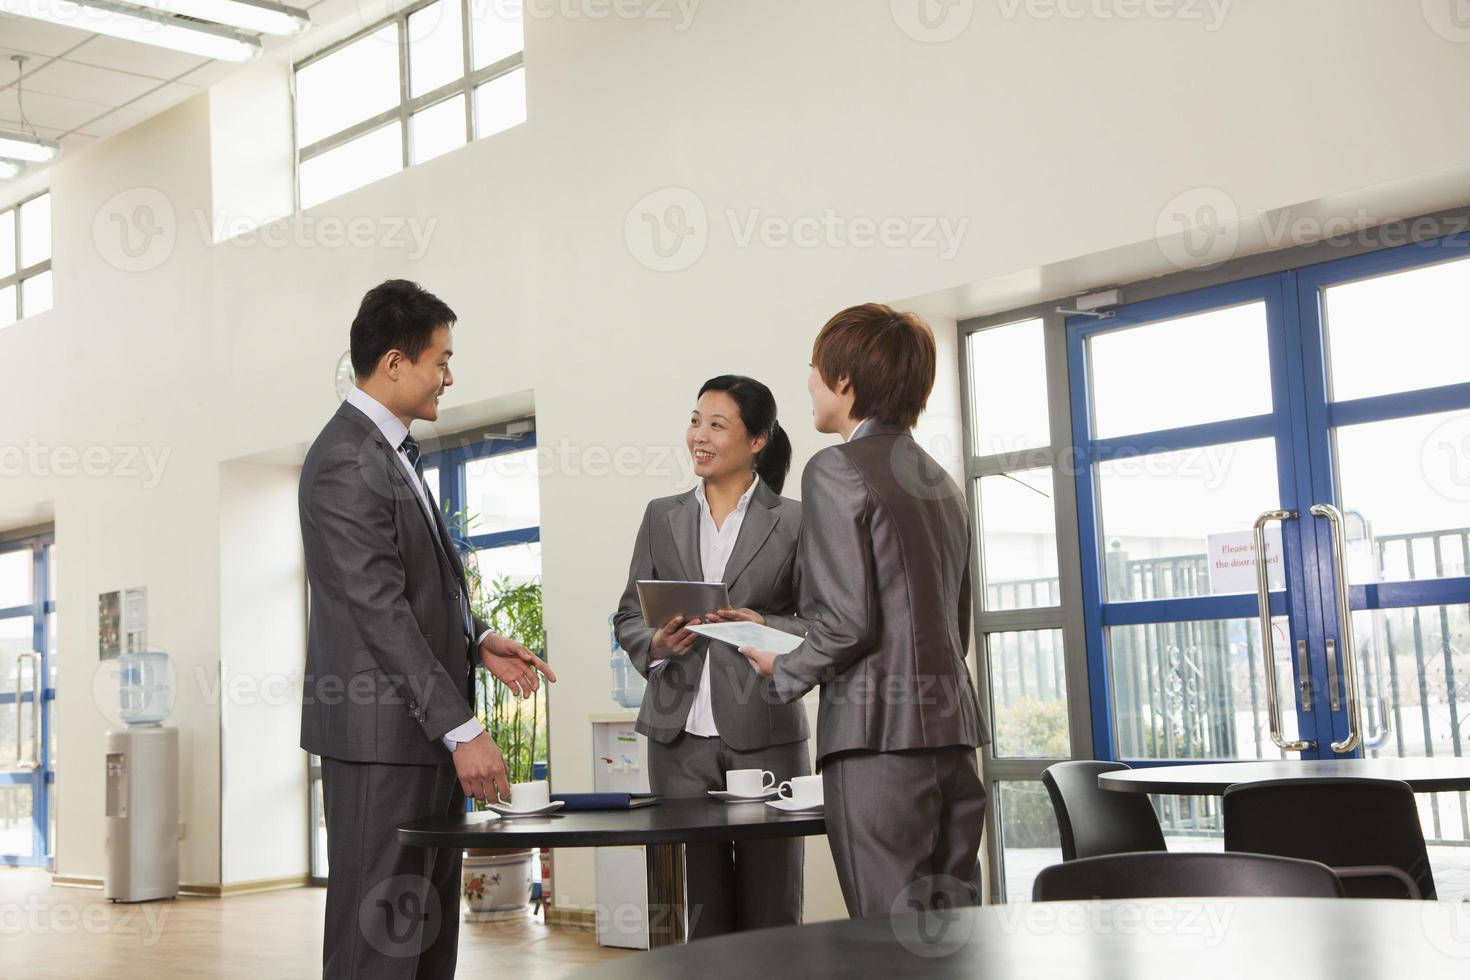 Three business people meeting in company cafeteria photo